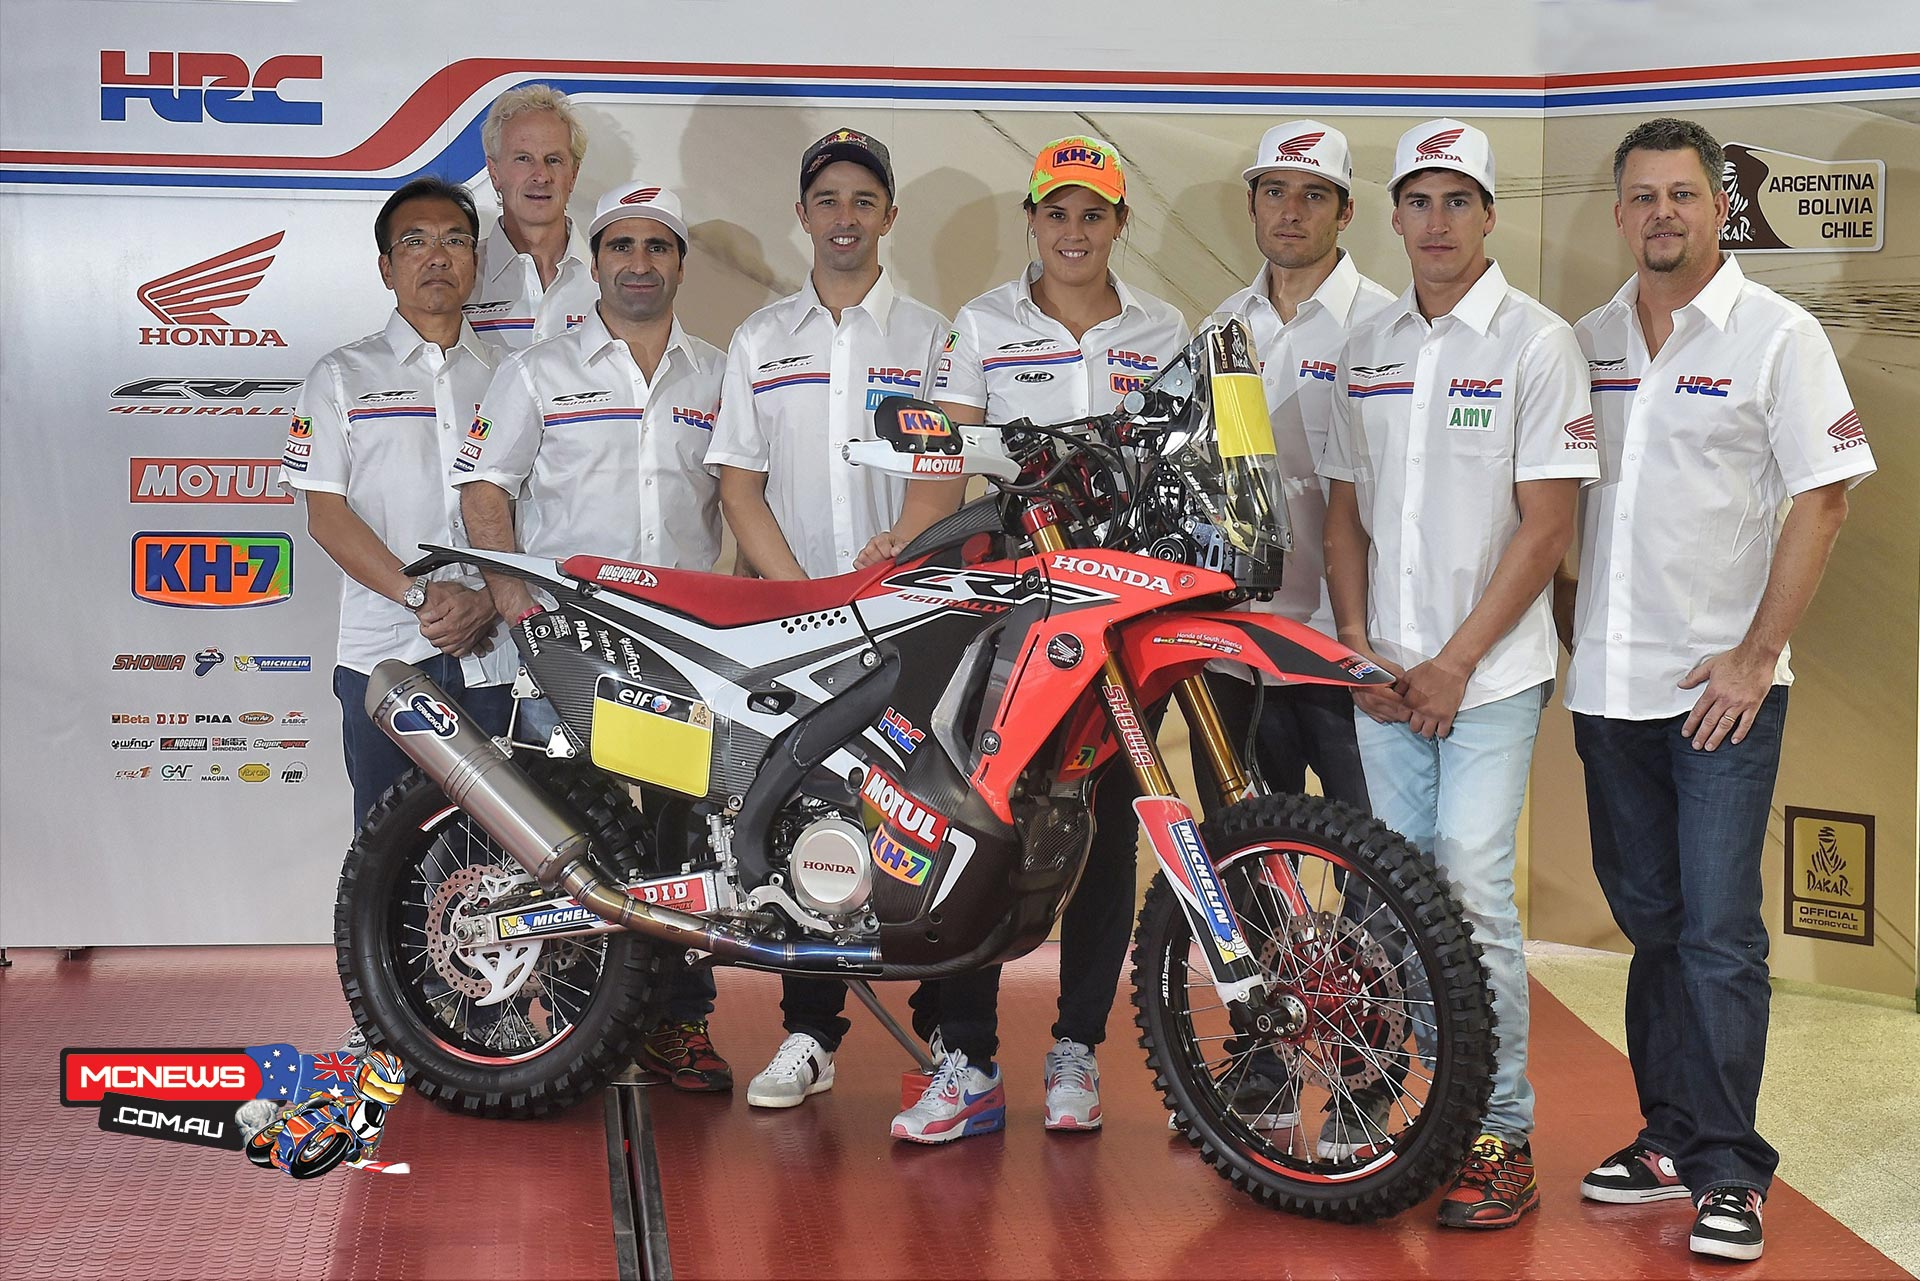 The CRF450 Rally Dakar staff members are led by Large Project Leader Katsumi Yamazaki, General Manager Martino Bianchi, and Team Manager Wolfgang Fischer.